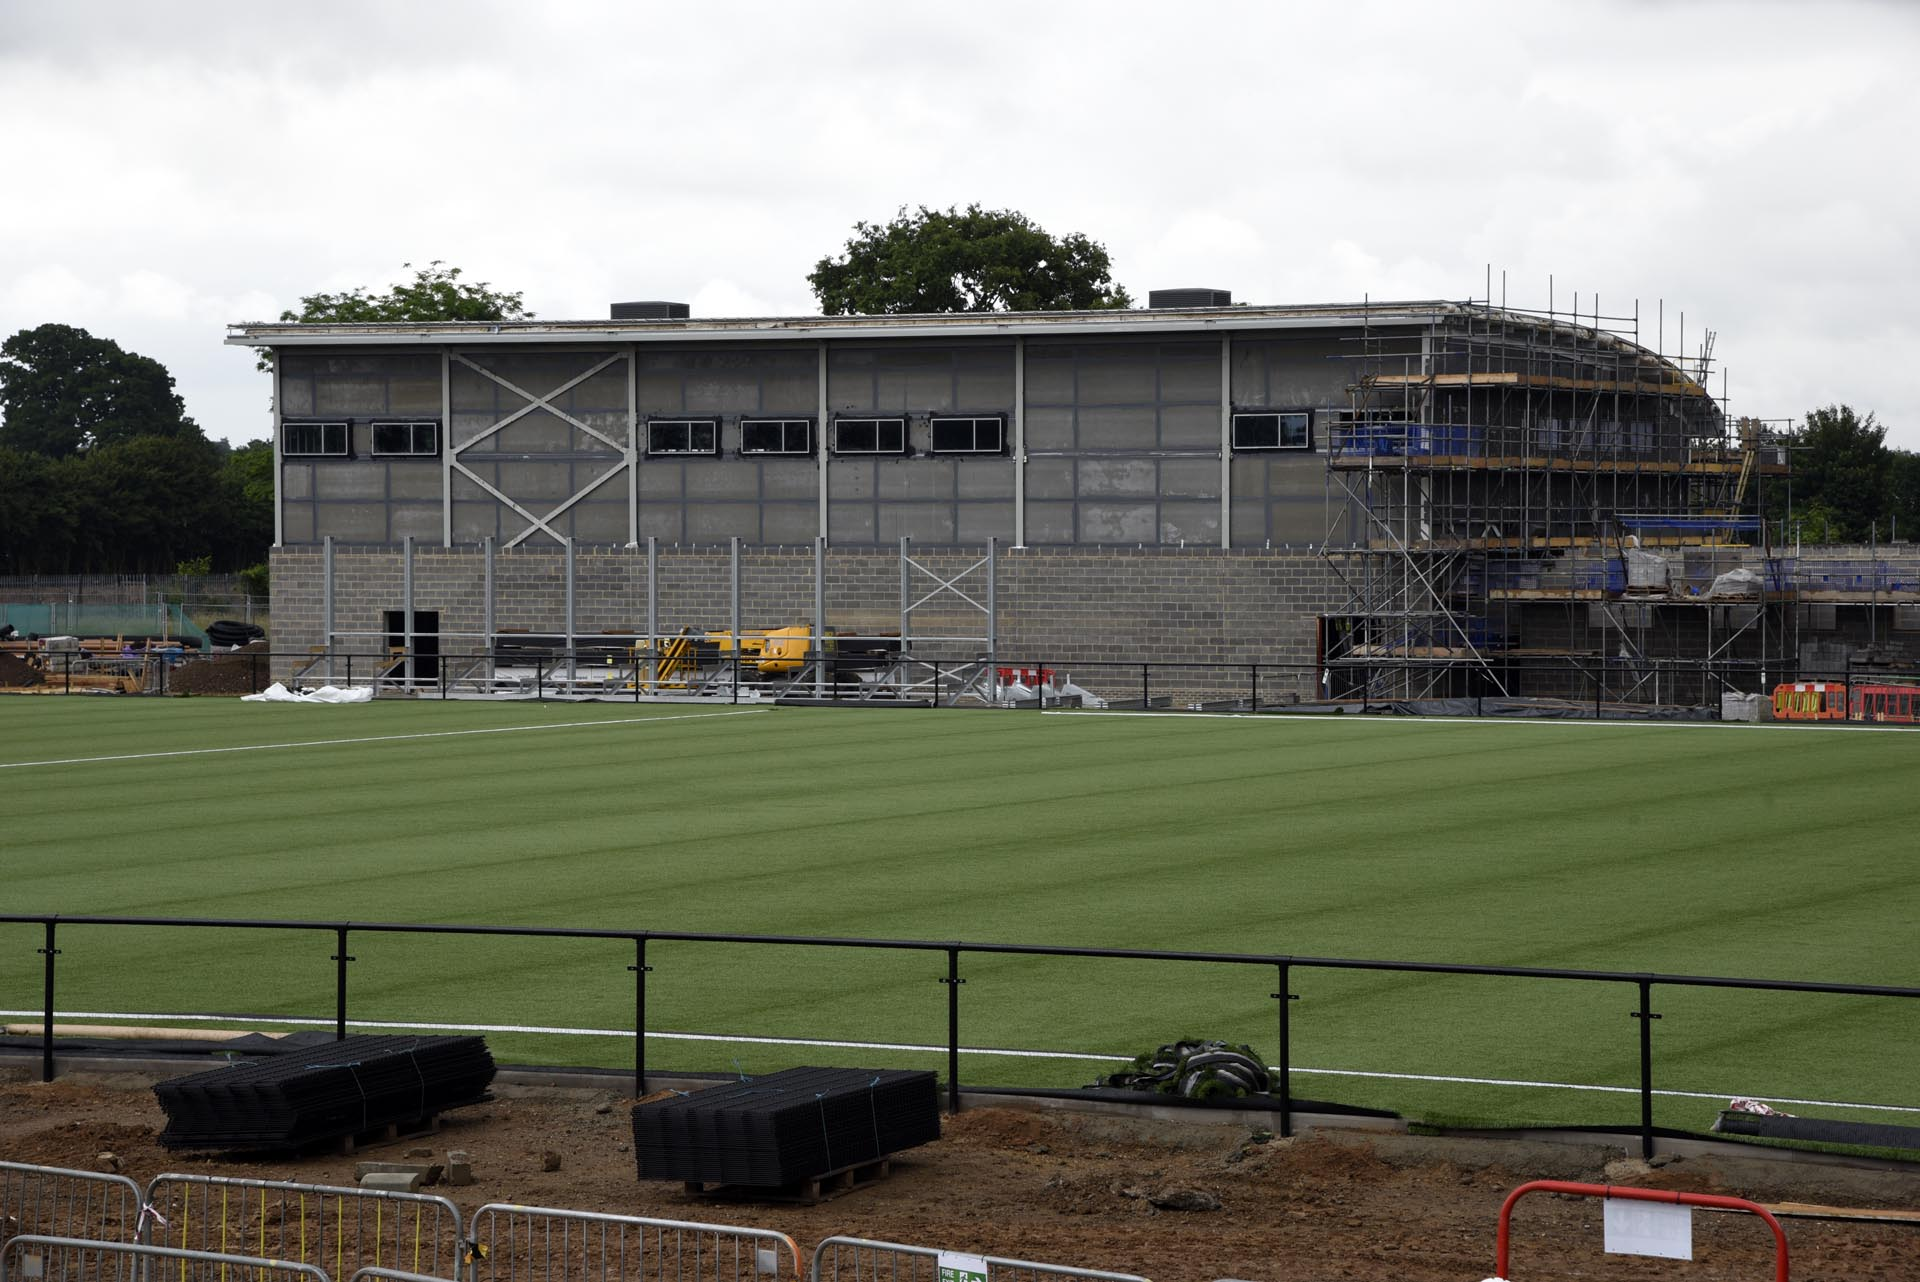 The new St Joseph's School Sports Hall at Arbour Park with the 3G pitch in front, a surface which soon could be the only FIFA and FA accredited stadium in the Berks & Bucks FA.